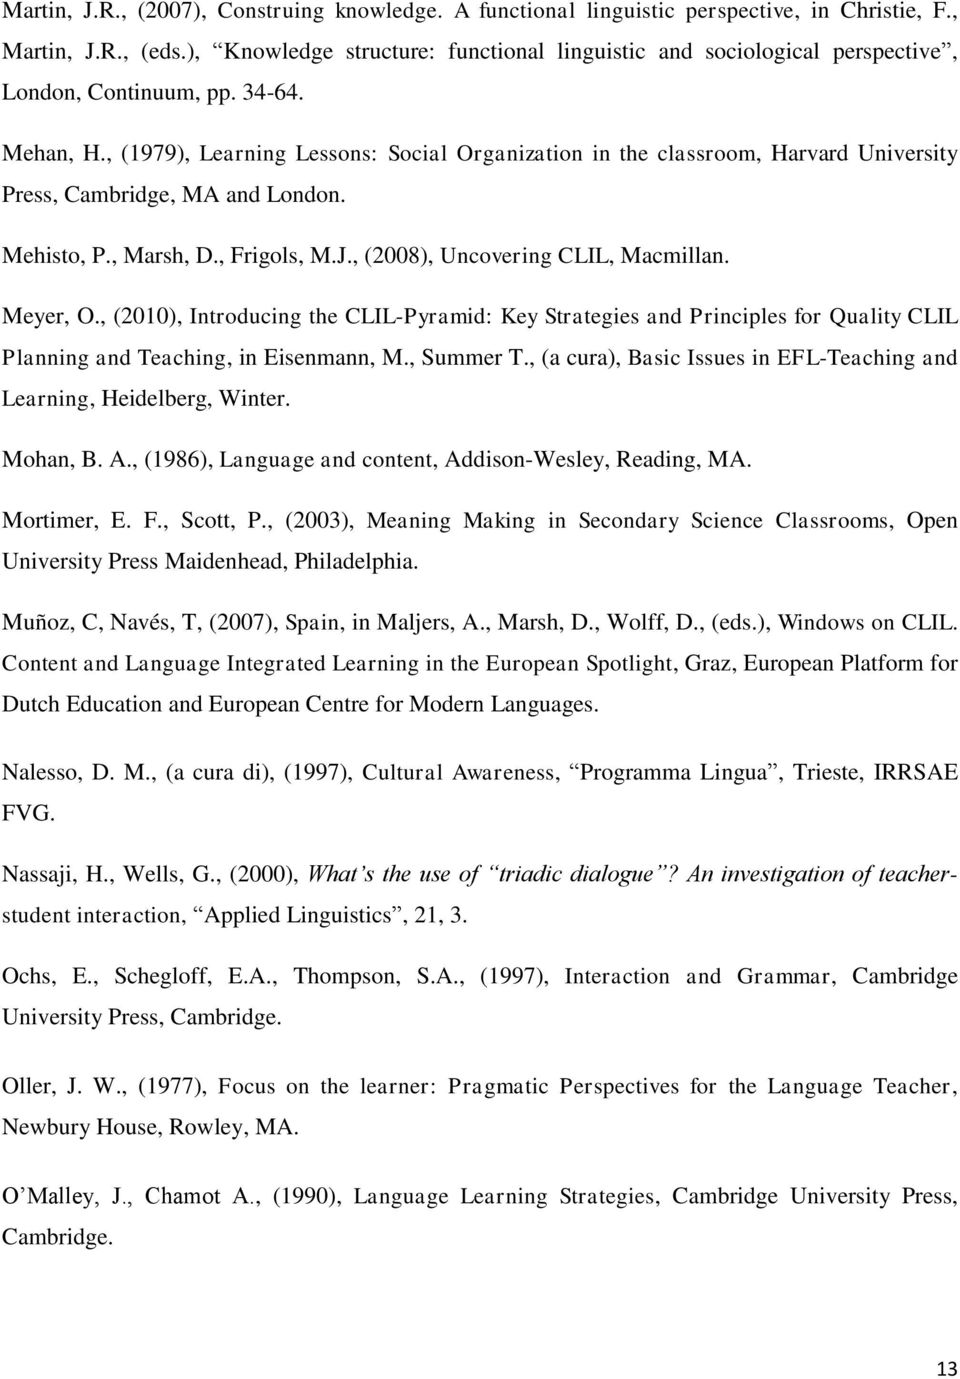 , (1979), Learning Lessons: Social Organization in the classroom, Harvard University Press, Cambridge, MA and London. Mehisto, P., Marsh, D., Frigols, M.J., (2008), Uncovering CLIL, Macmillan.